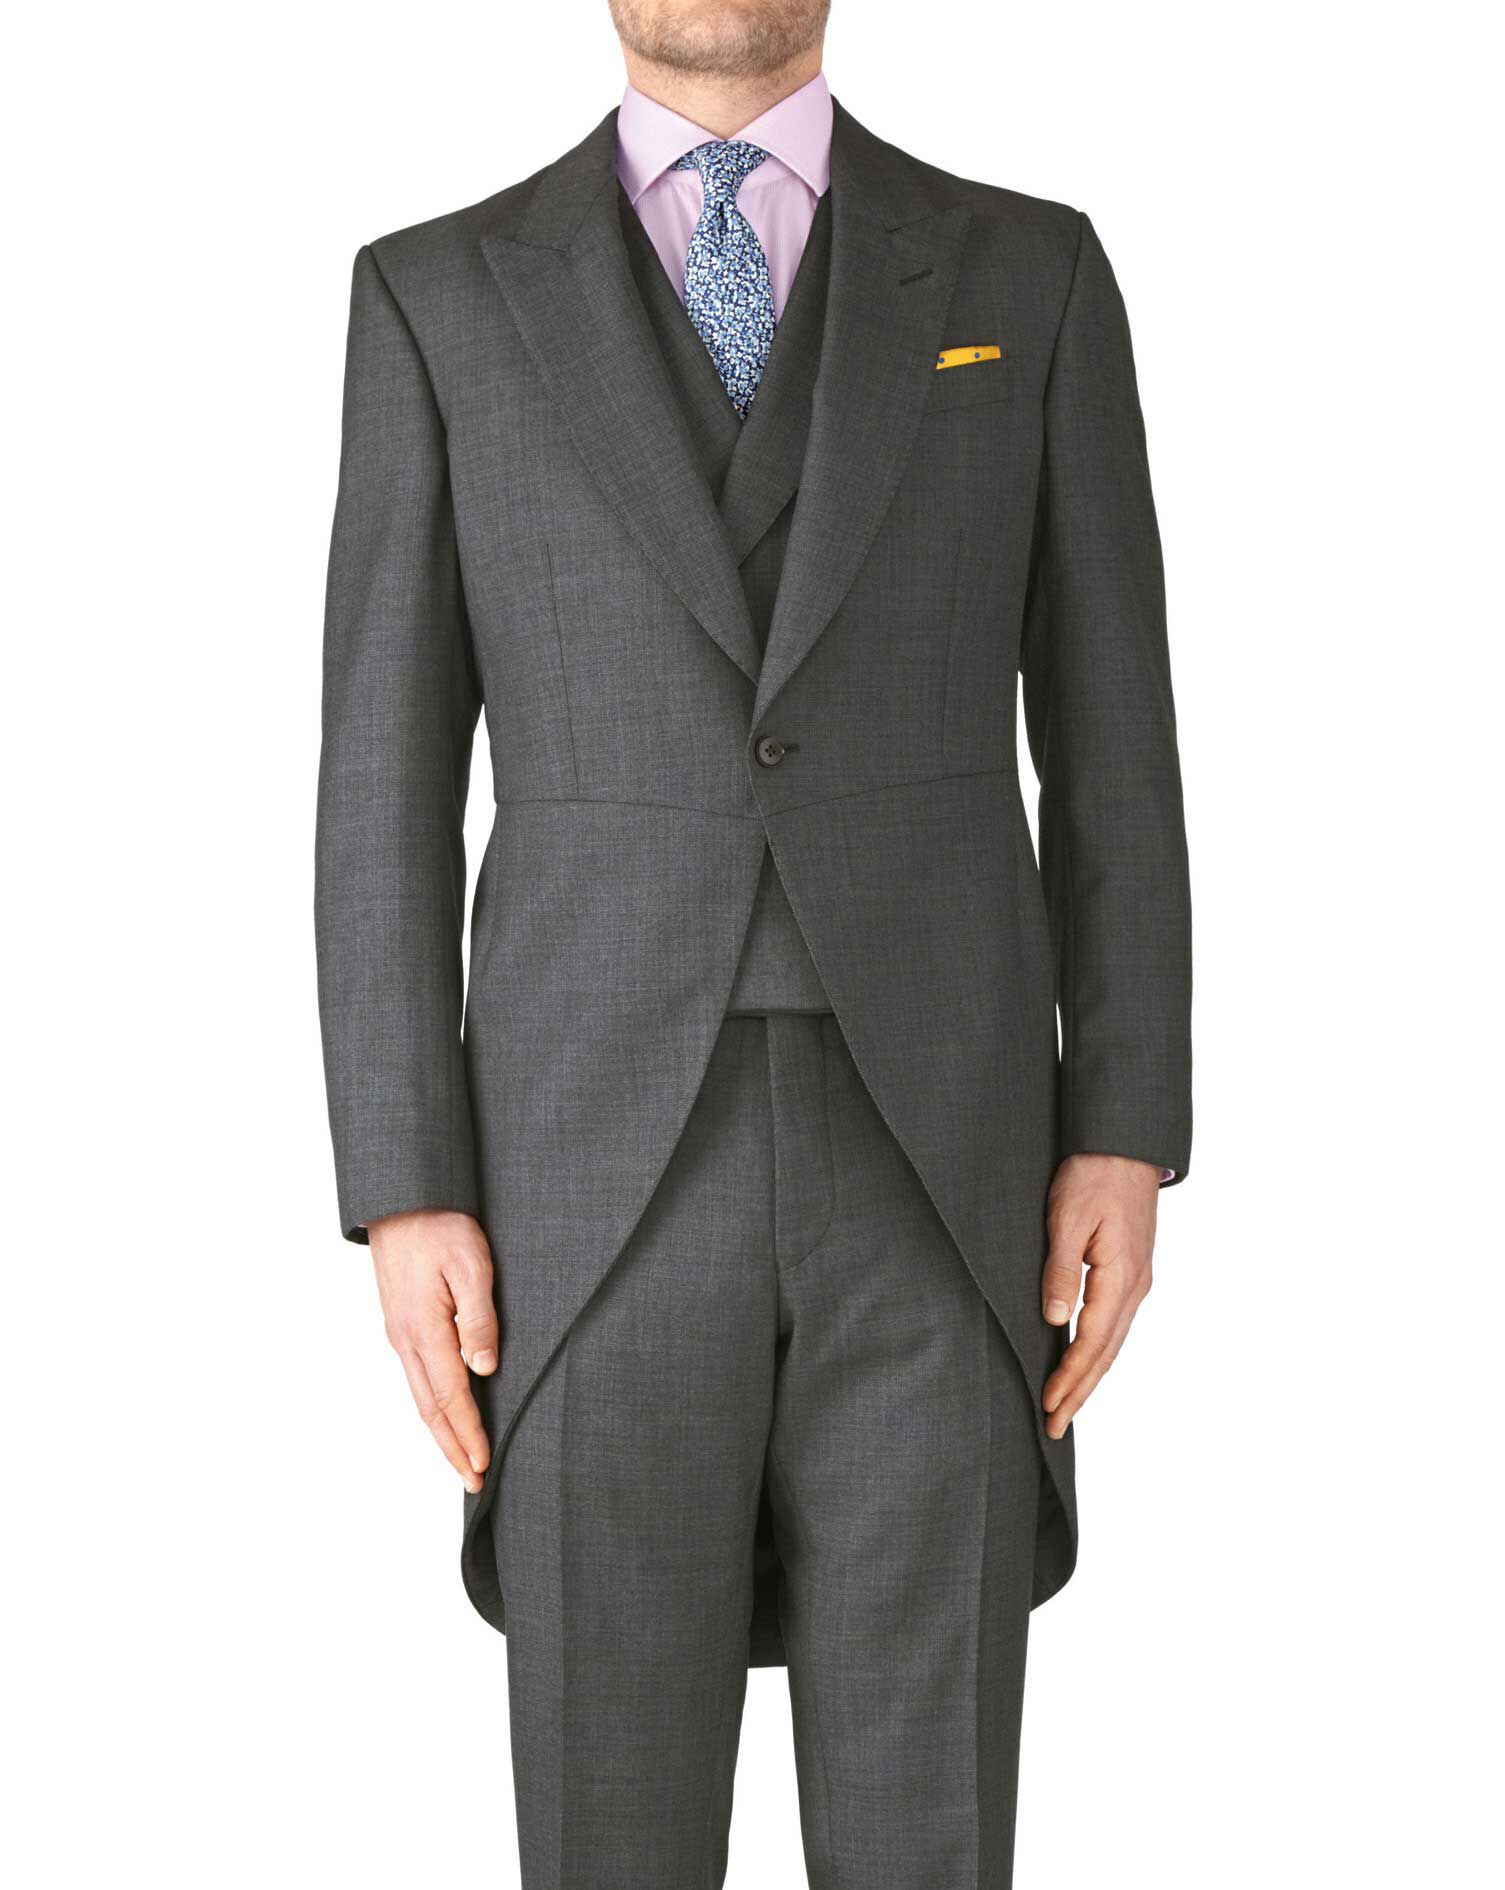 Dark Grey Classic Fit Morning Suit Tail Coat Size 48 Regular by Charles Tyrwhitt